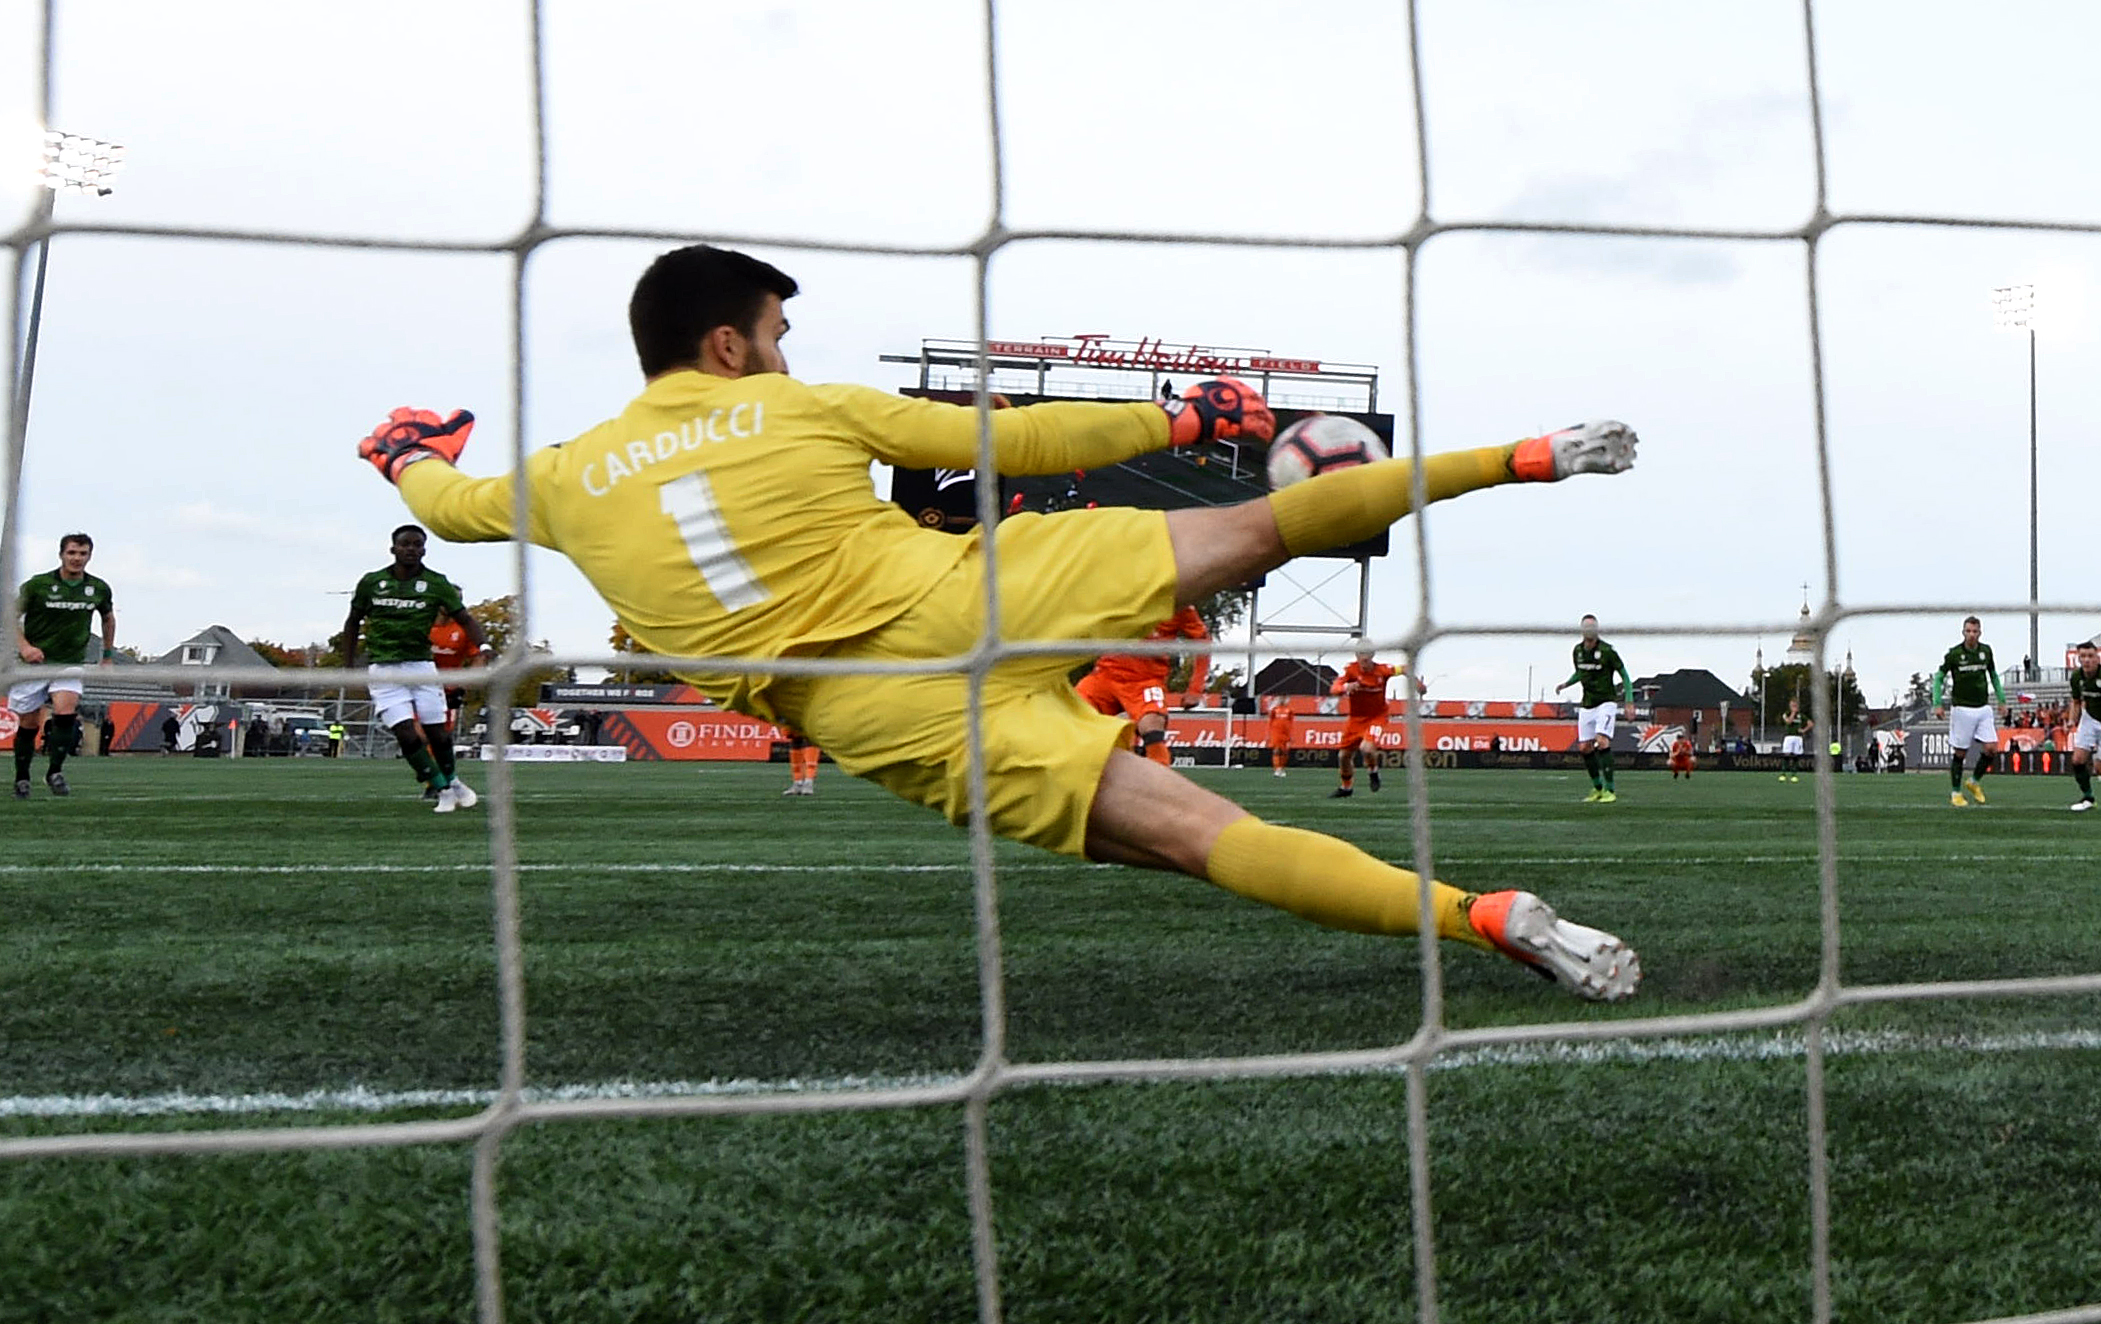 Oct 26, 2019; Hamilton, Ontario, CAN; Cavalry FC goalkeeper Marco Carducci (1) makes a save on a penalty kick against Forge FC in the first half of a Canadian Premier League soccer final match at Tim Hortons Field. Mandatory Credit: Dan Hamilton-USA TODAY Sports for CPL